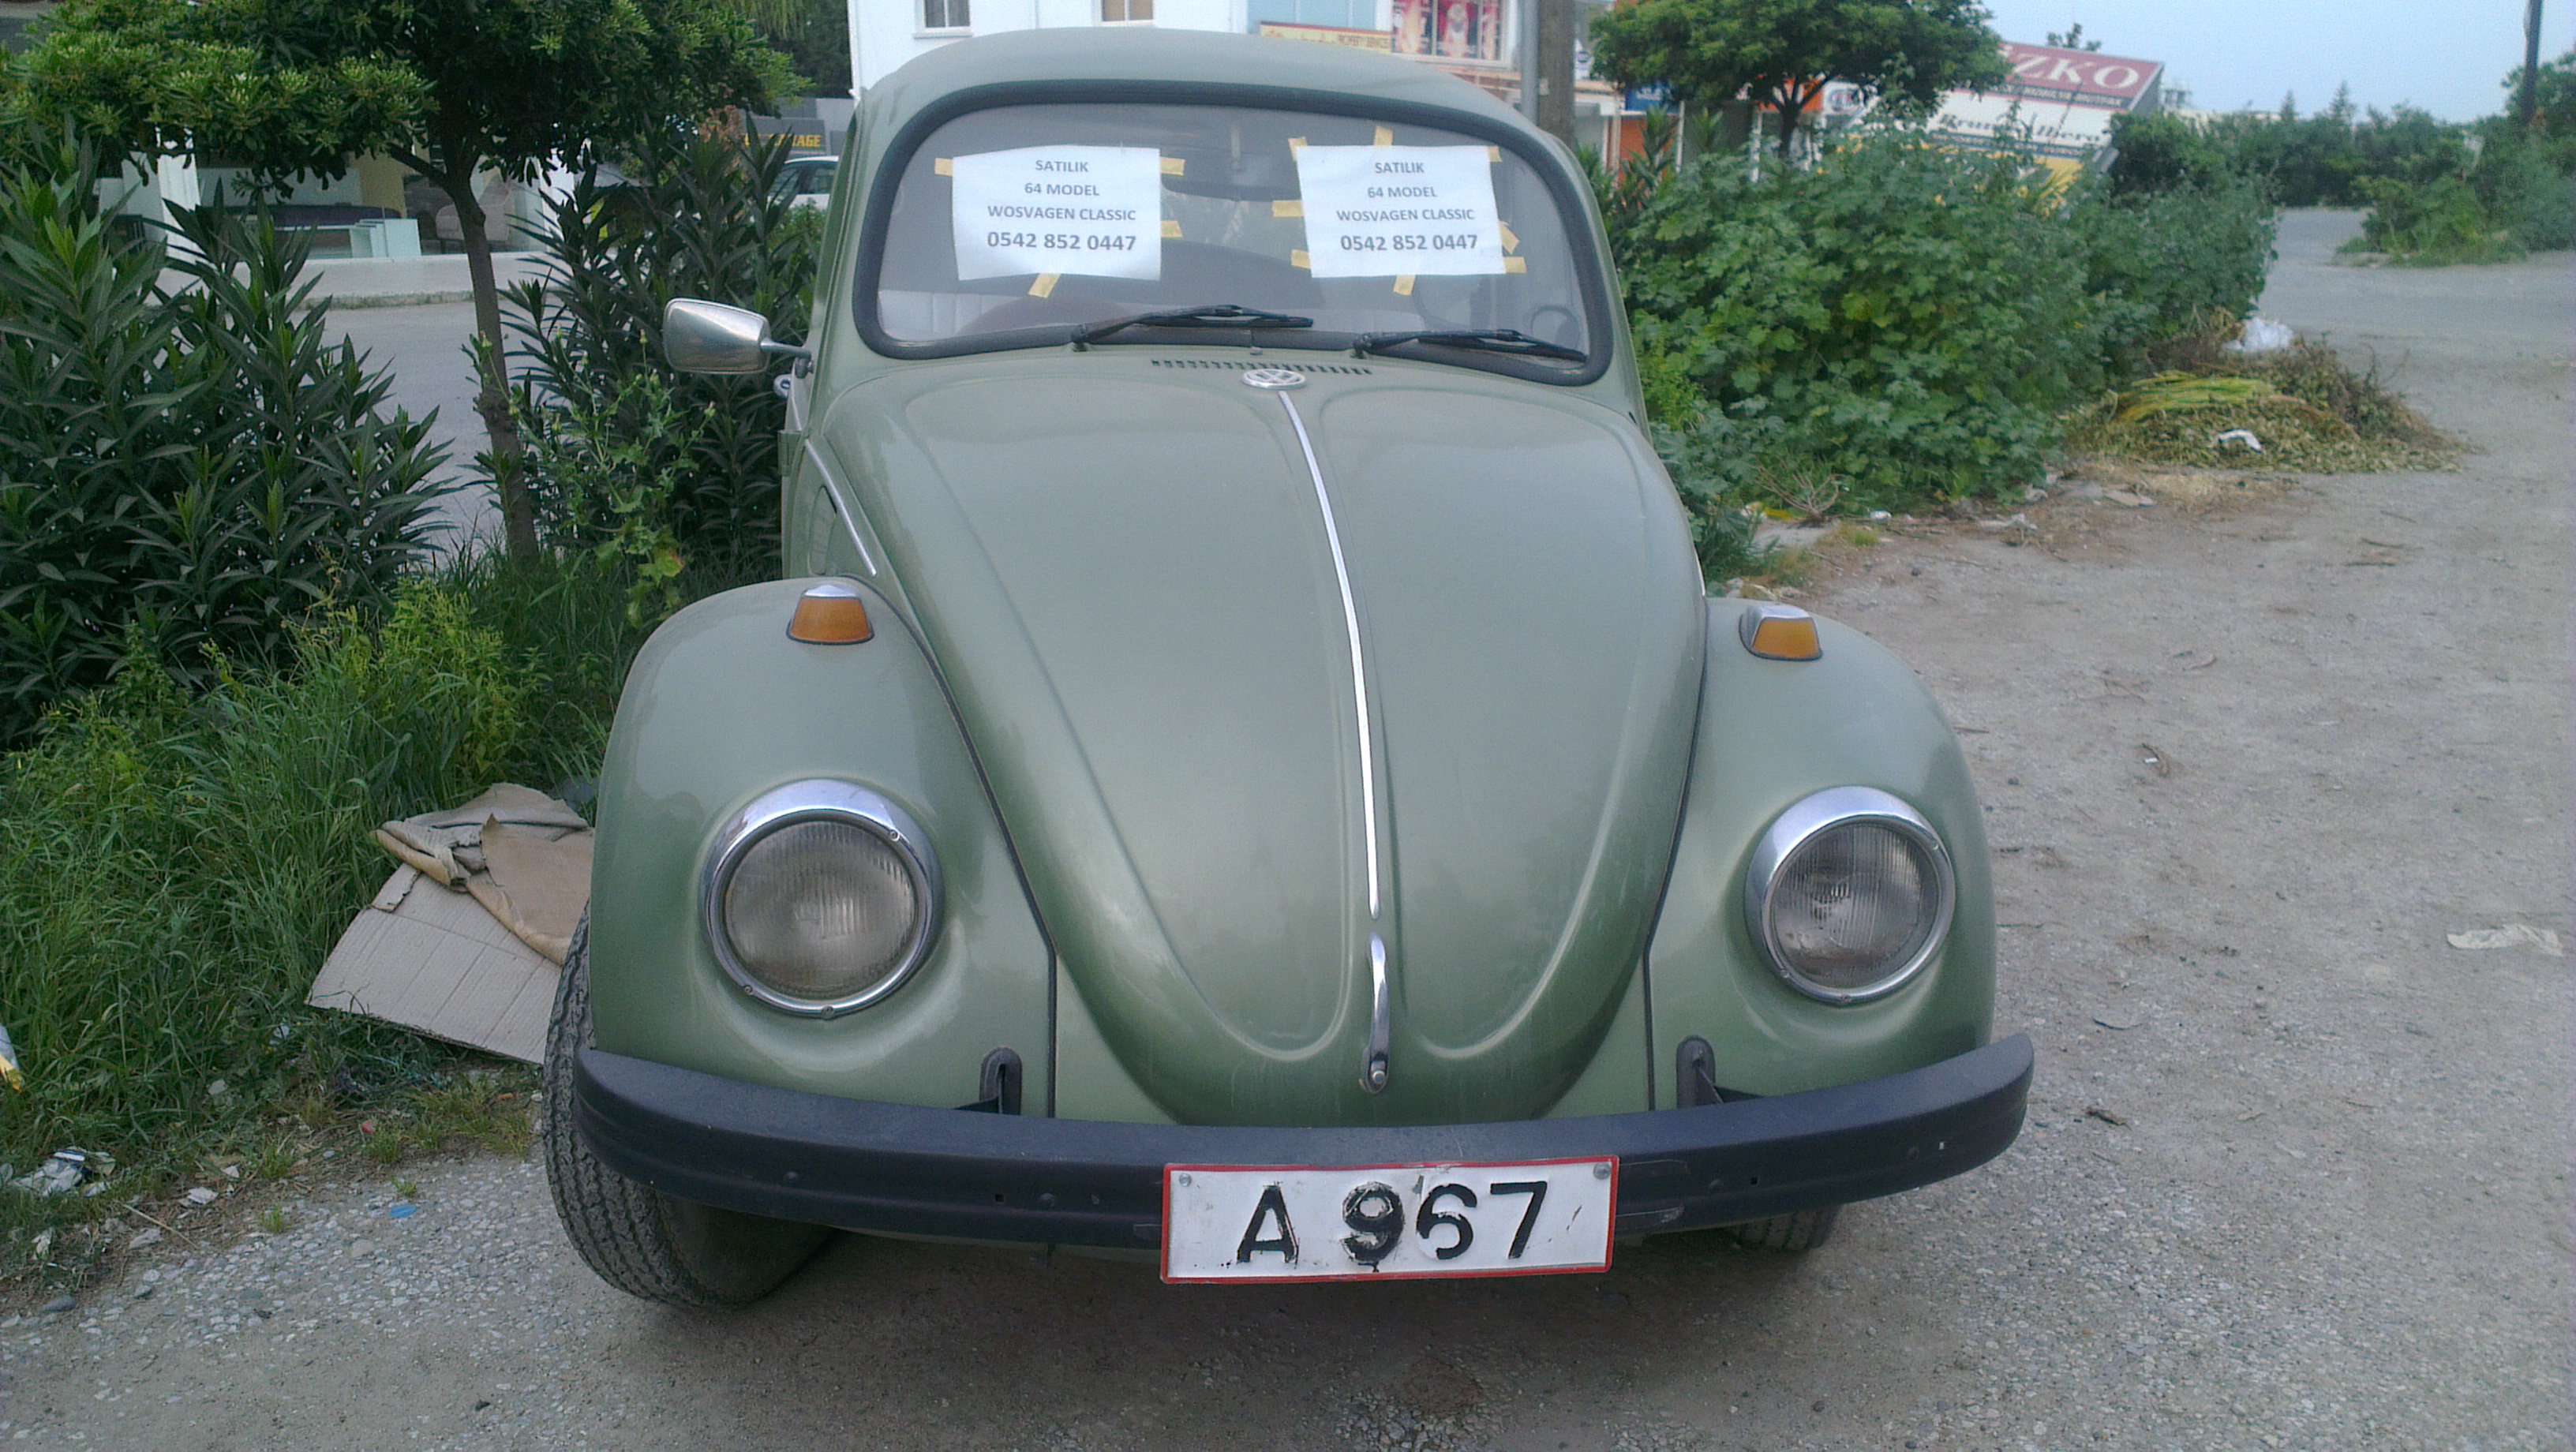 Uncategorized Campervantures Clic Volkswagen Bug We Saw Quite A Few Beetles Being Driven Around Especially Bright Yellow Ones Oddly Enough And Even Found One For Sale